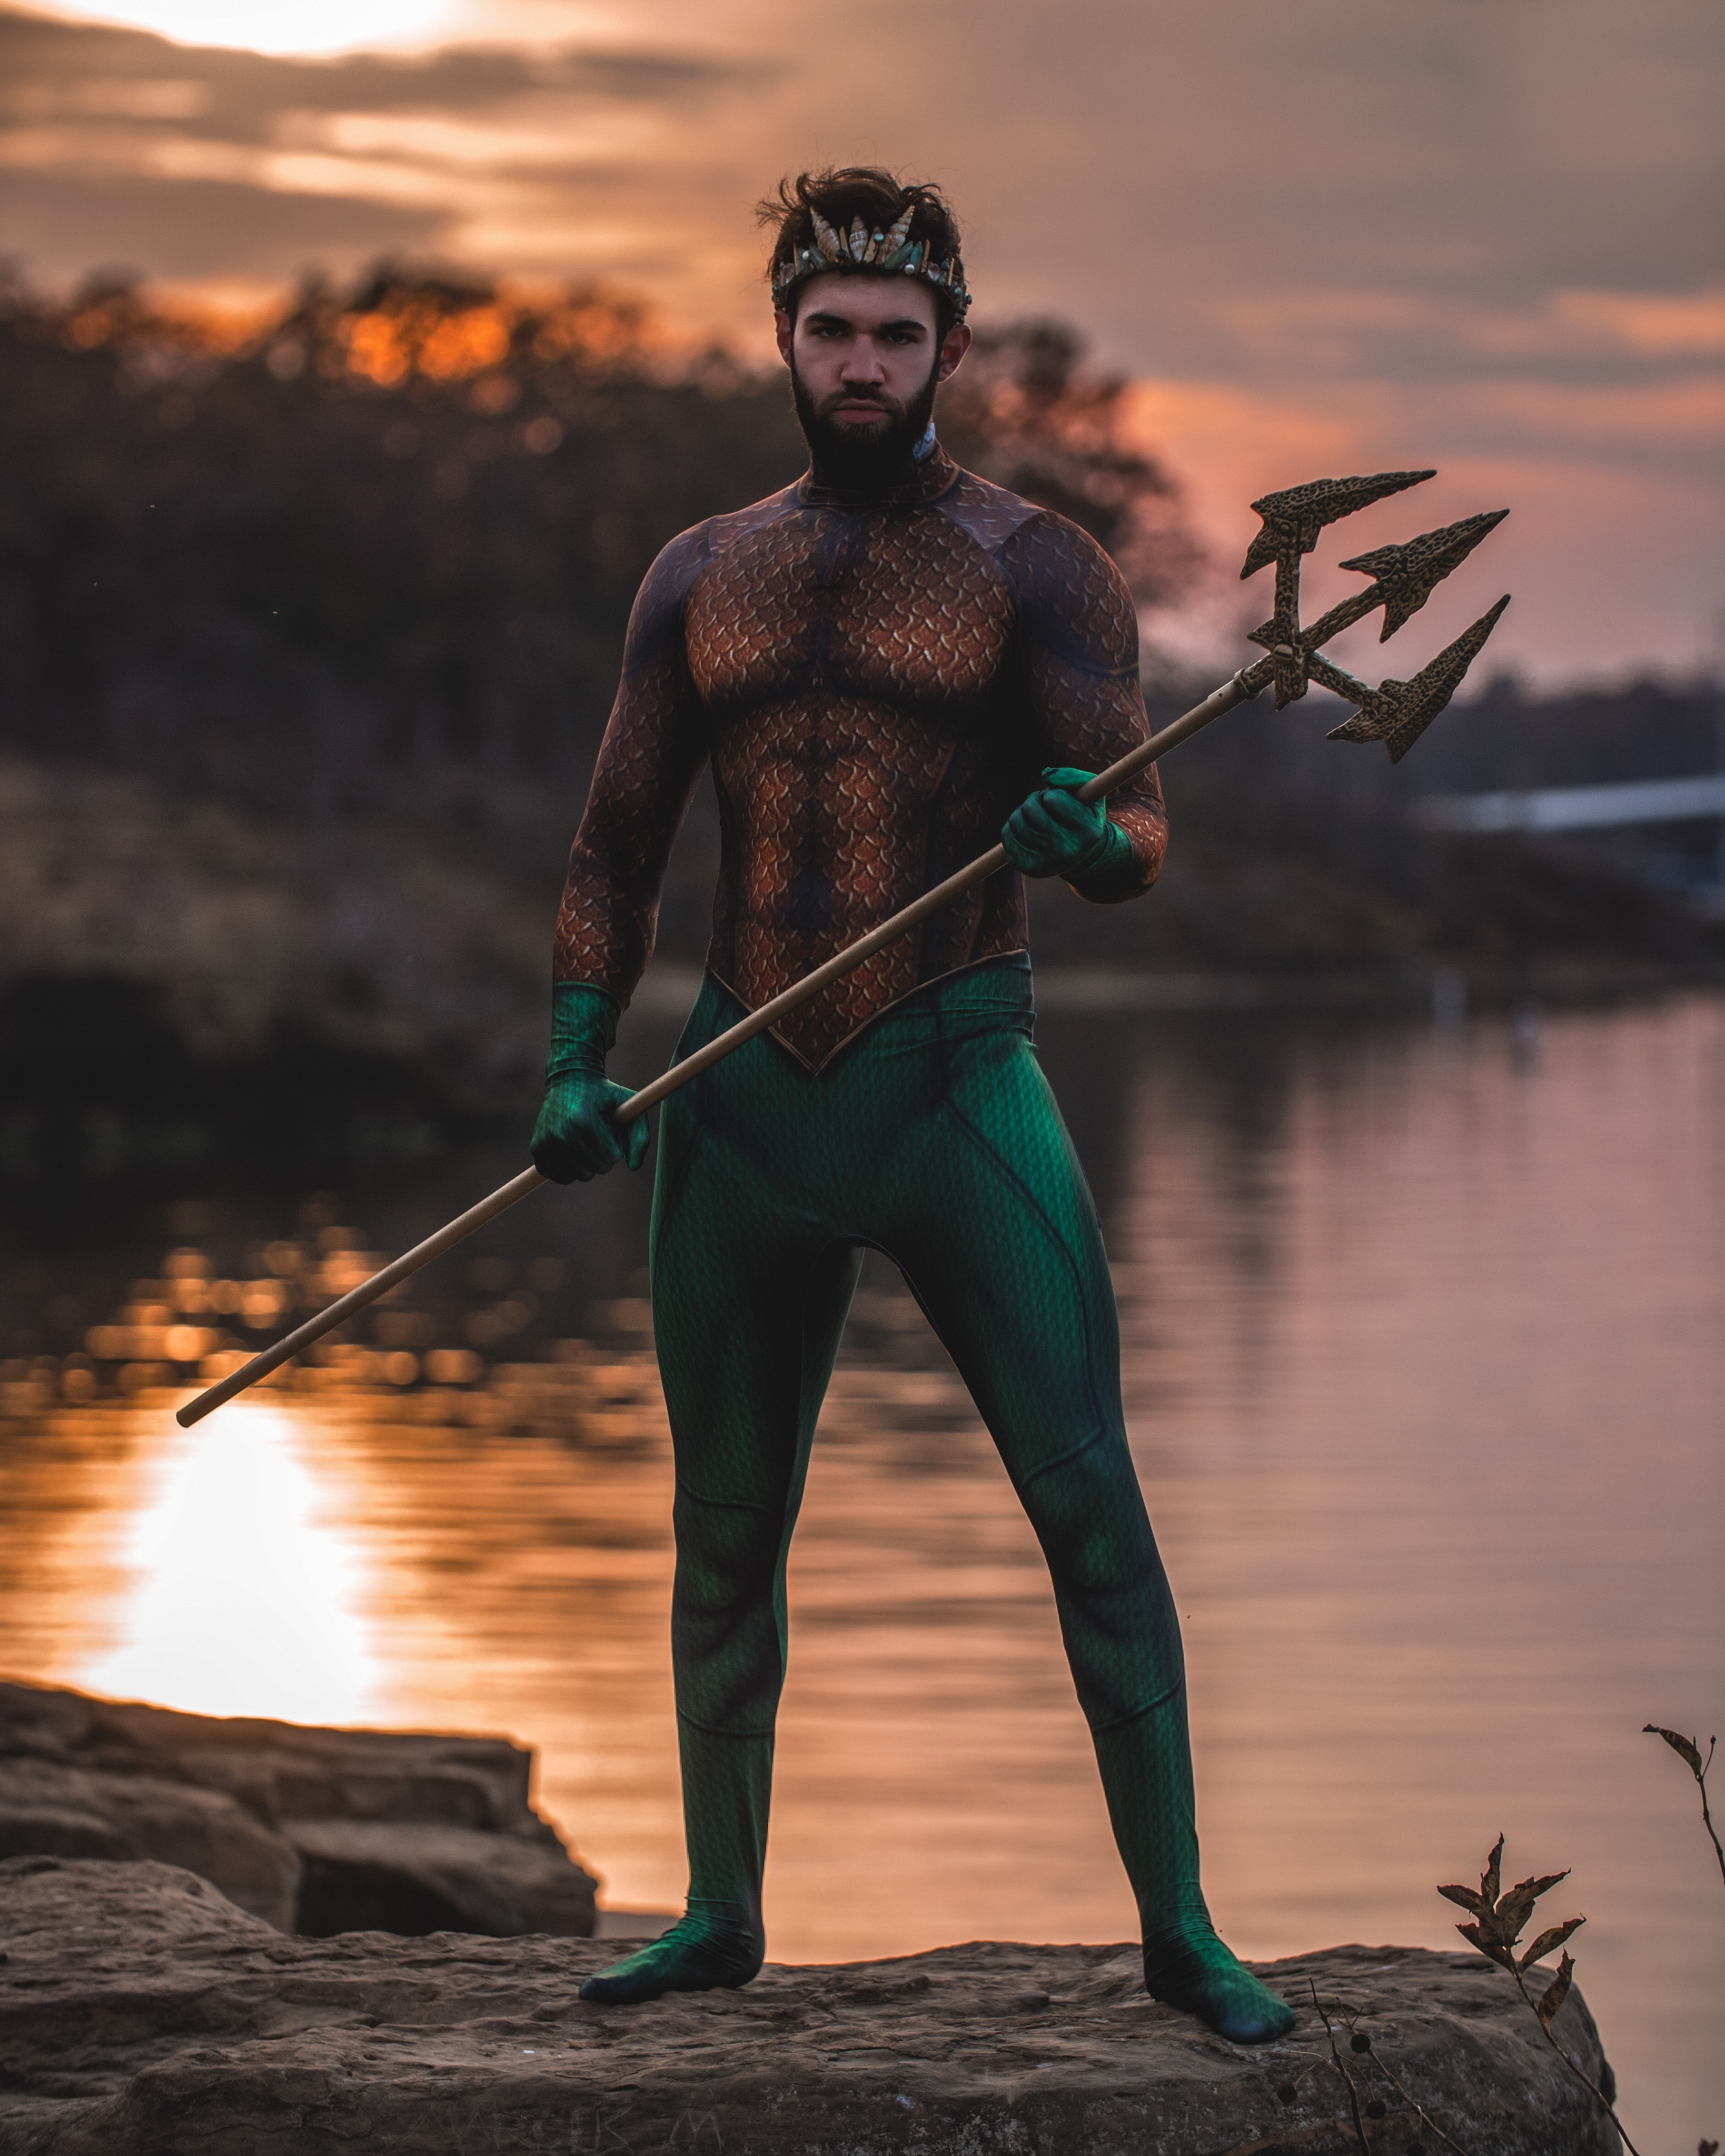 man wearing Poseidon costume standing on rock